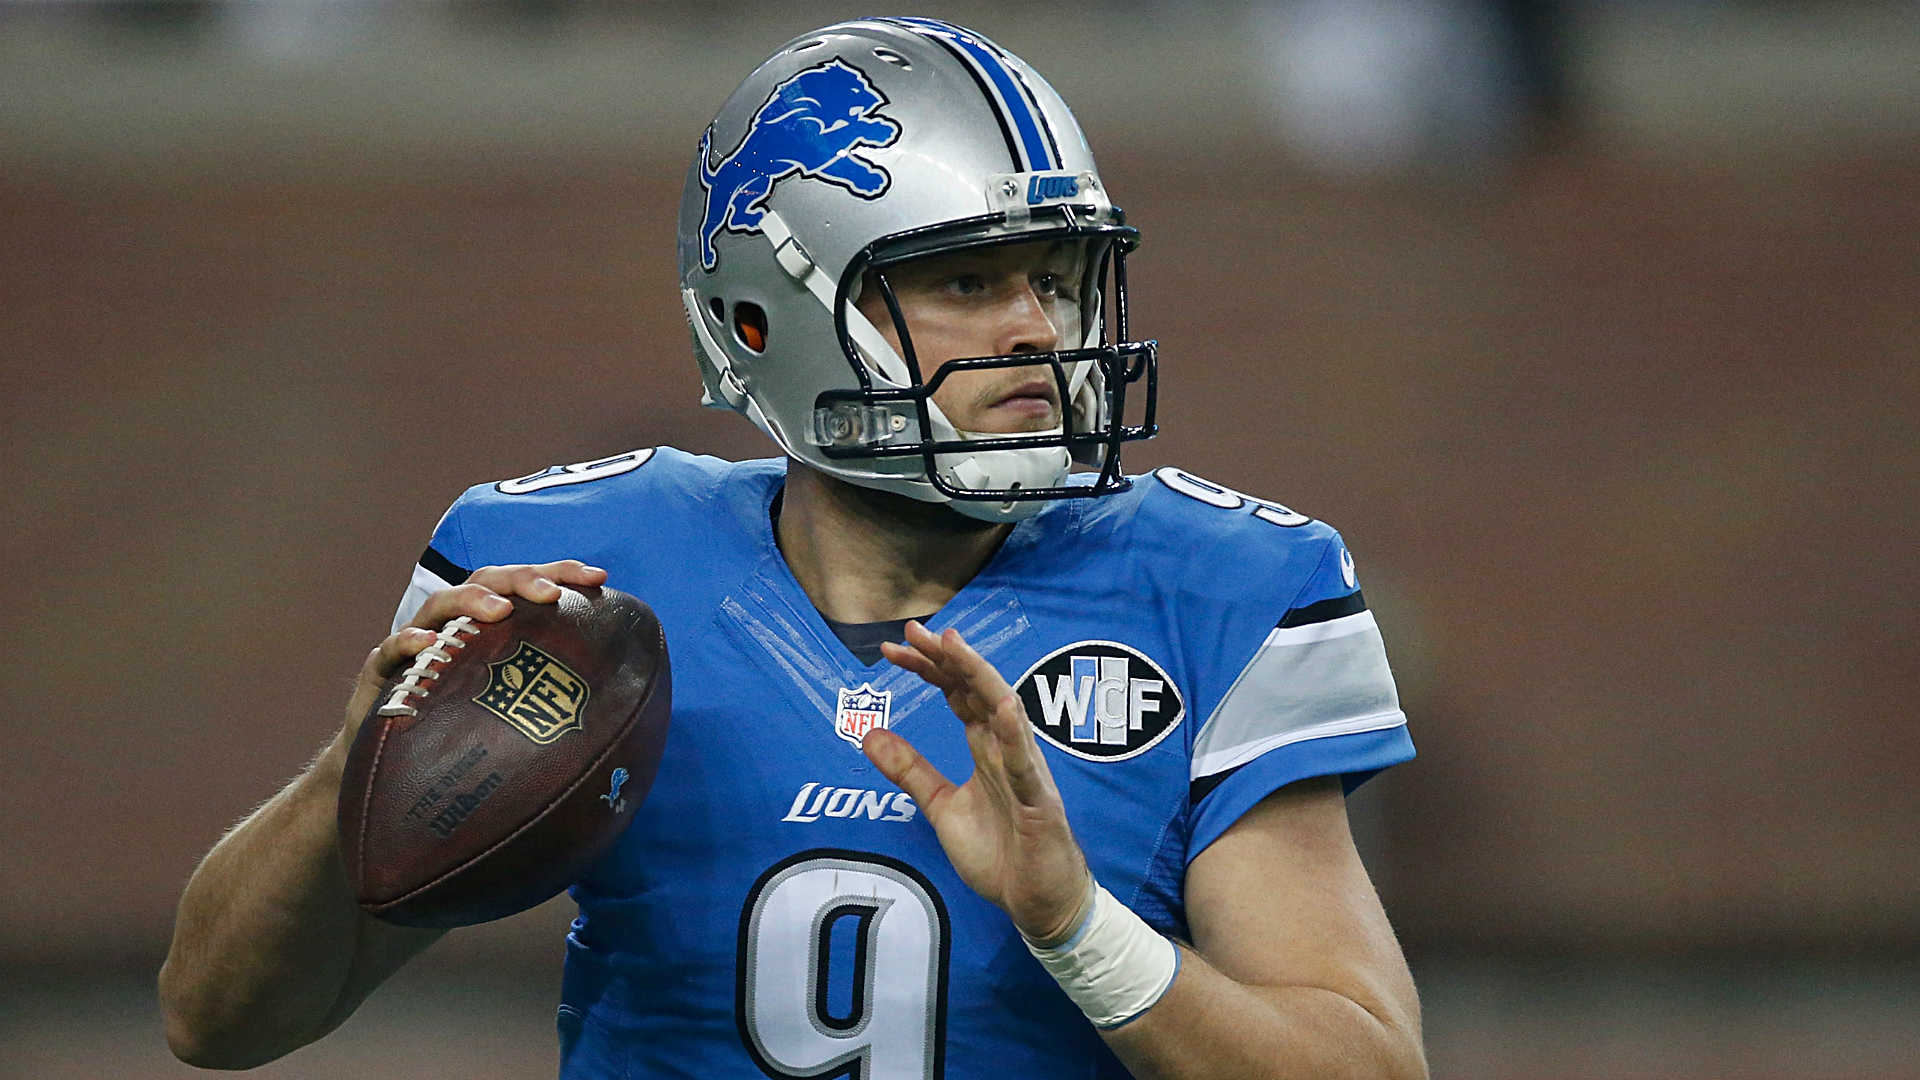 Matthew Stafford worked with private quarterback tutor this